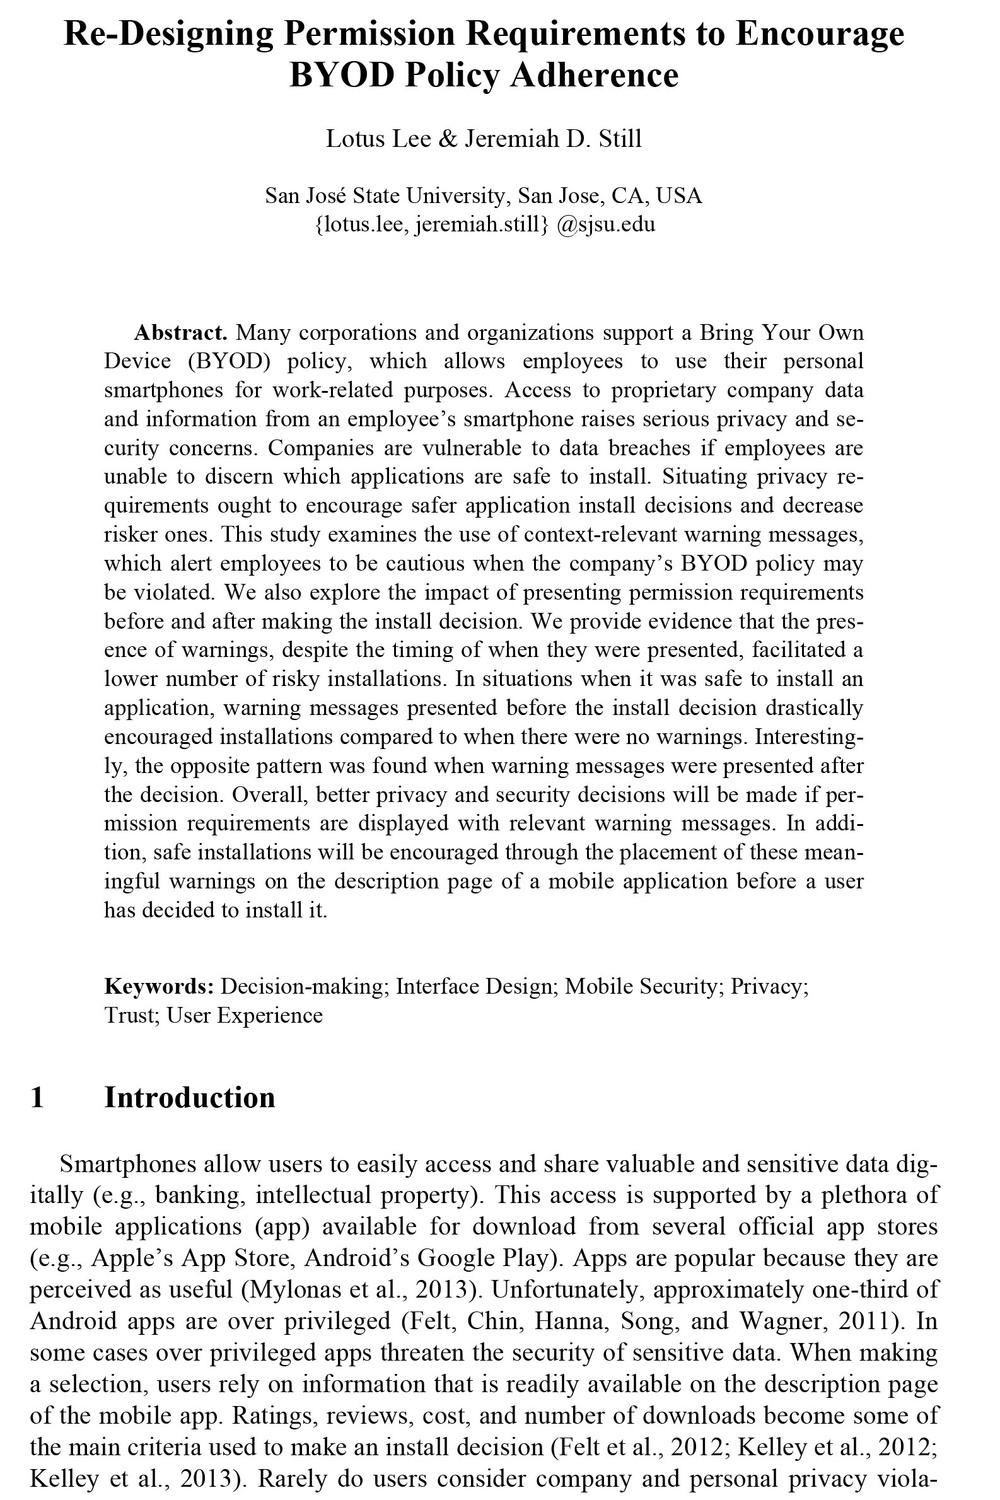 Conference Paper (pg 1)